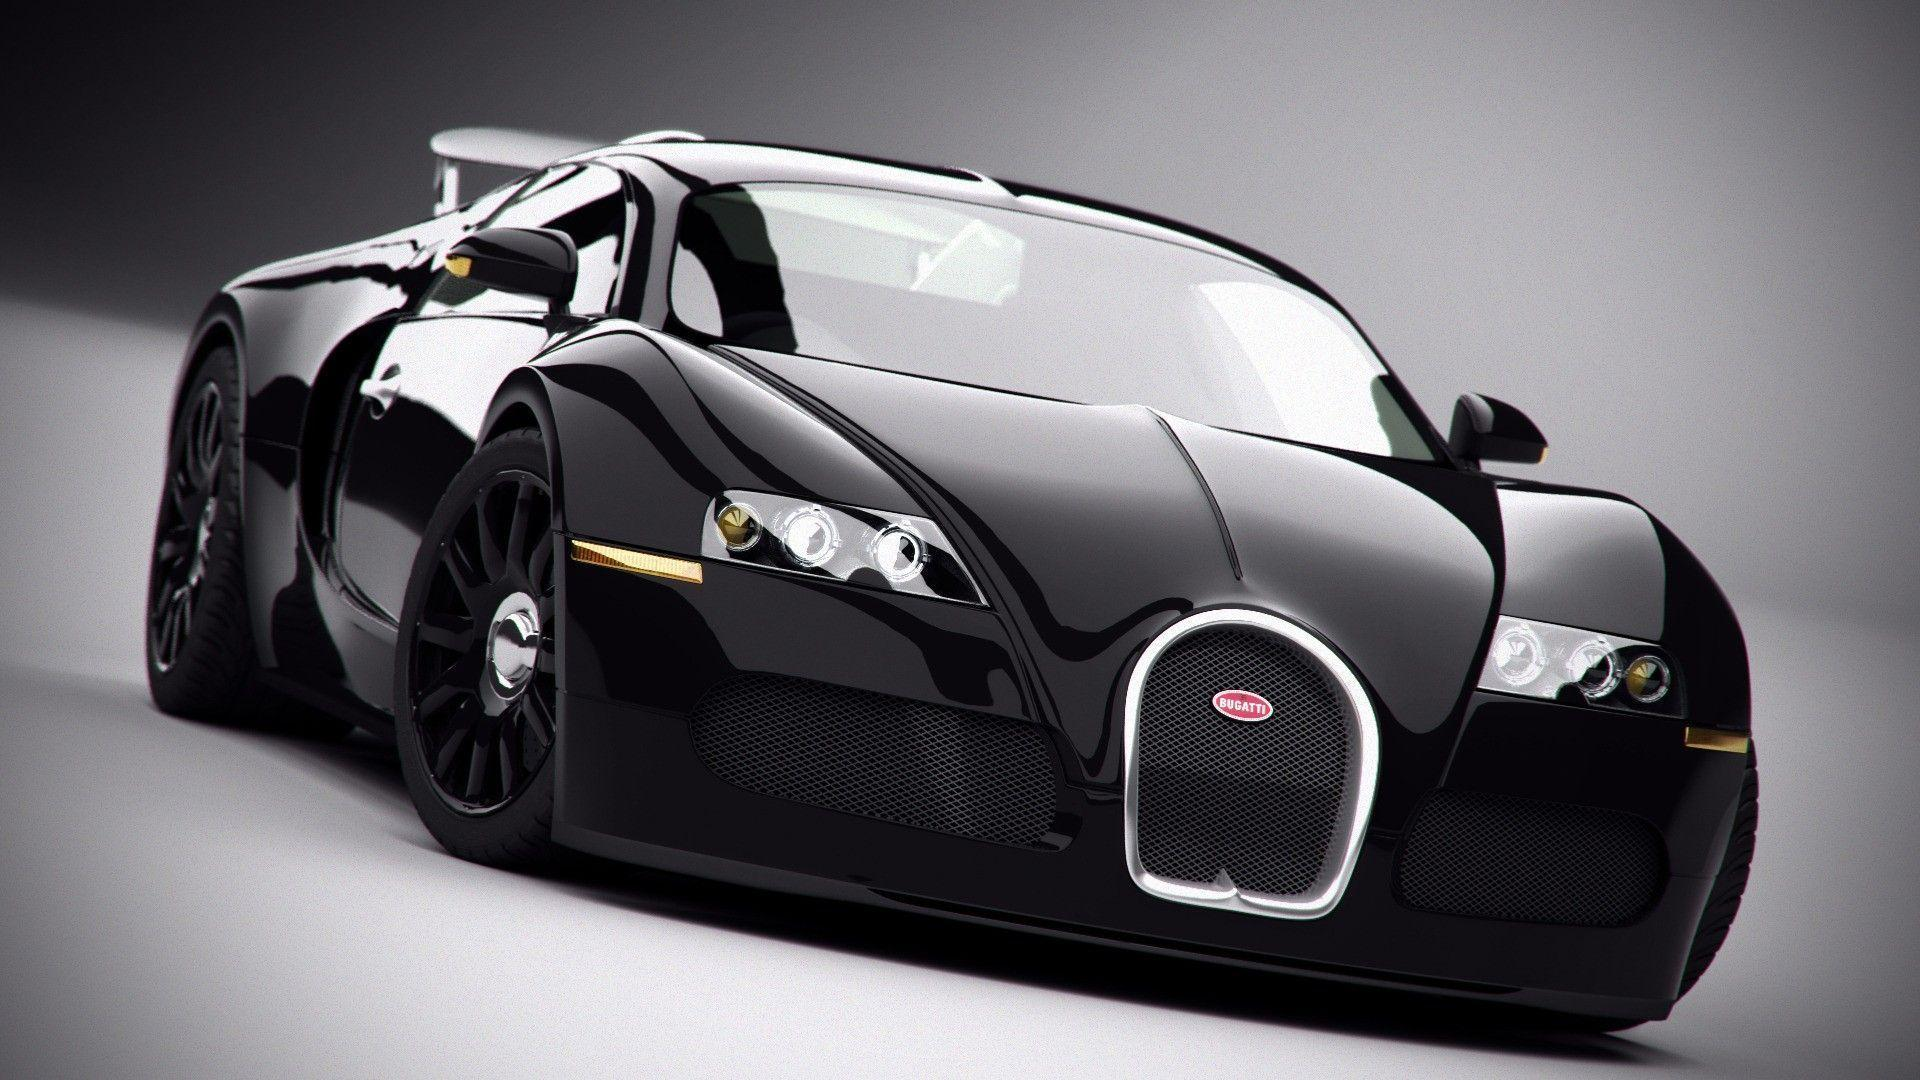 Nothing found for Bugatti Veyron On A Black Backgrounds Wallpapers